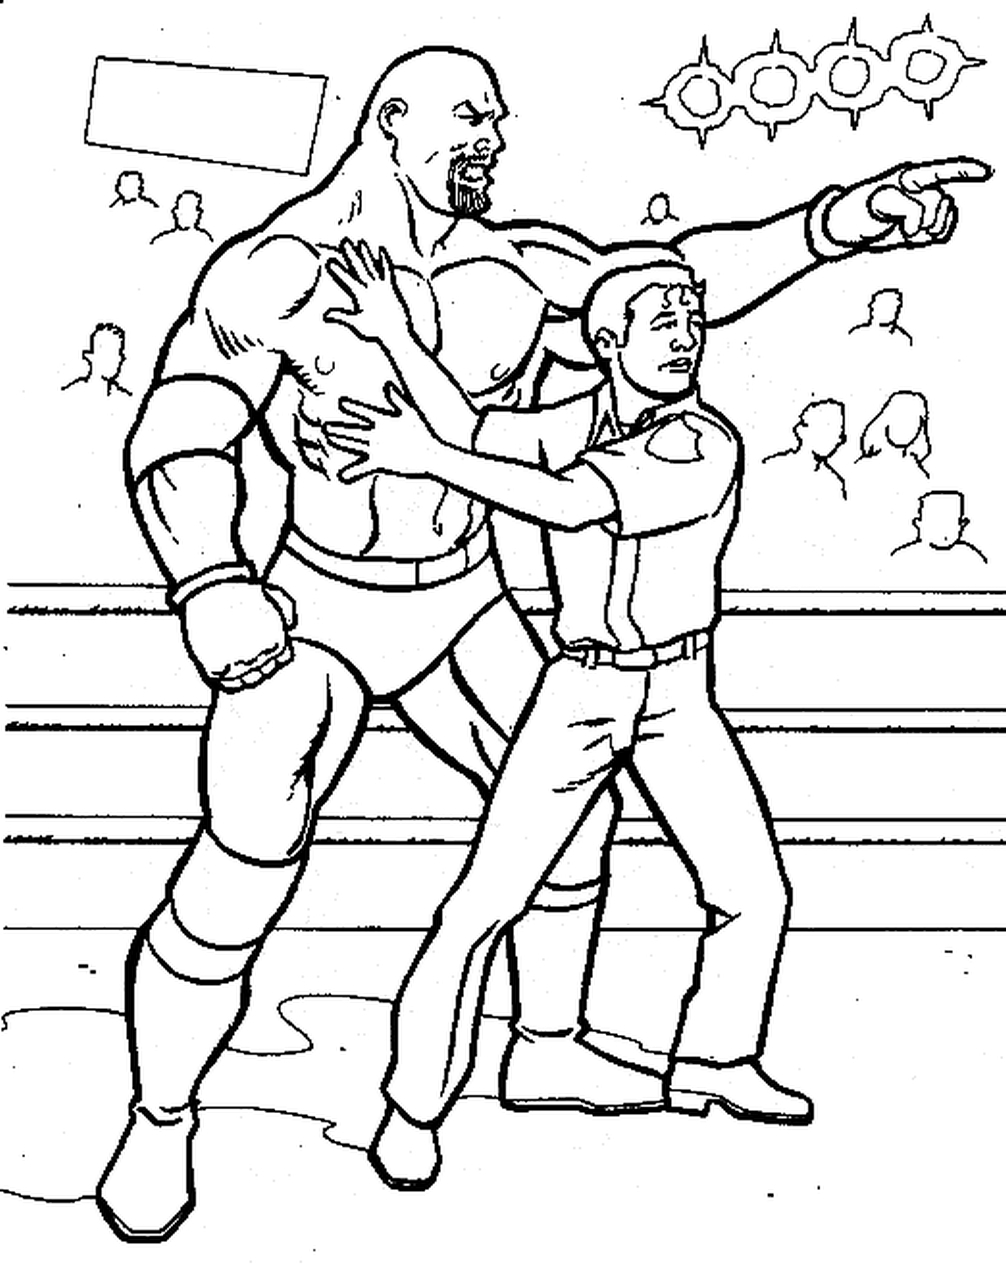 fire truck coloring page - printable wwe coloring pages goldberg